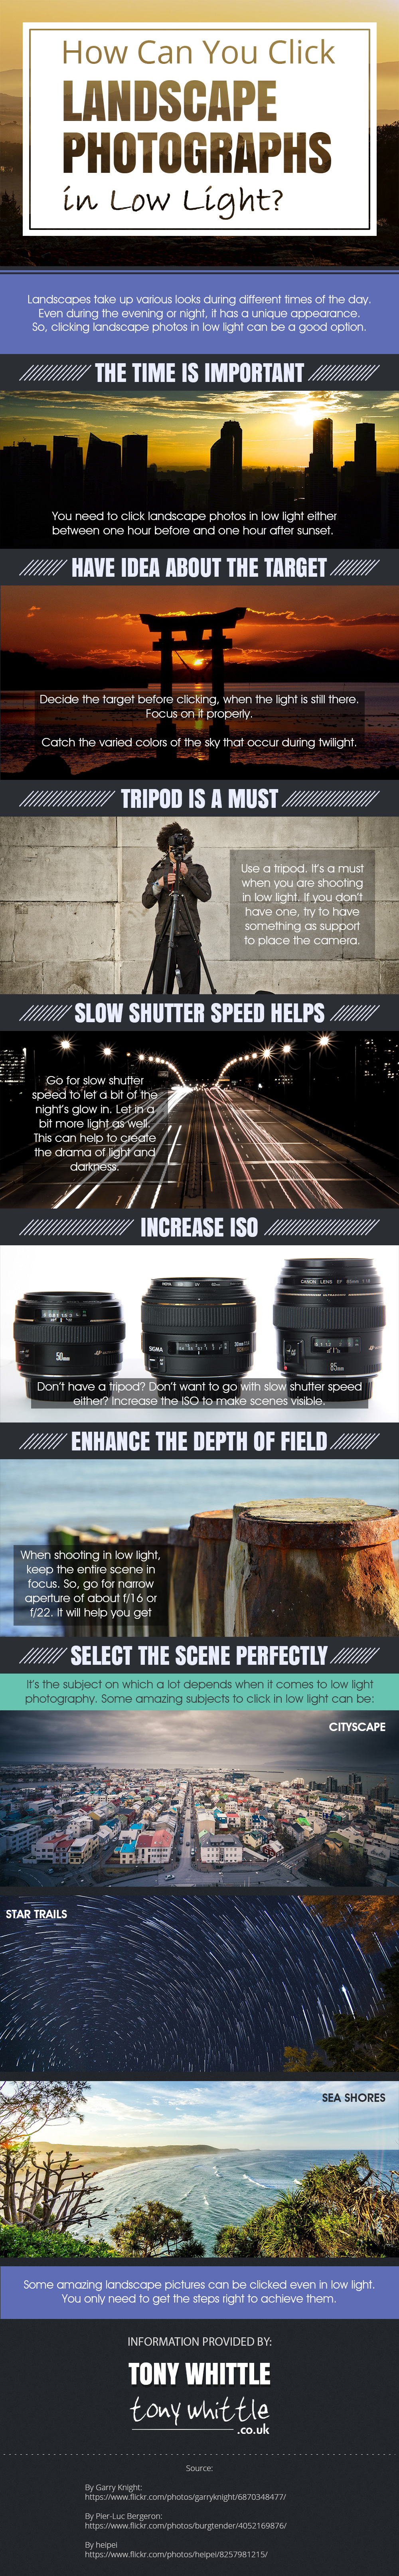 How-Can-You-Click-Landscape-Photographs-in-Low-Light